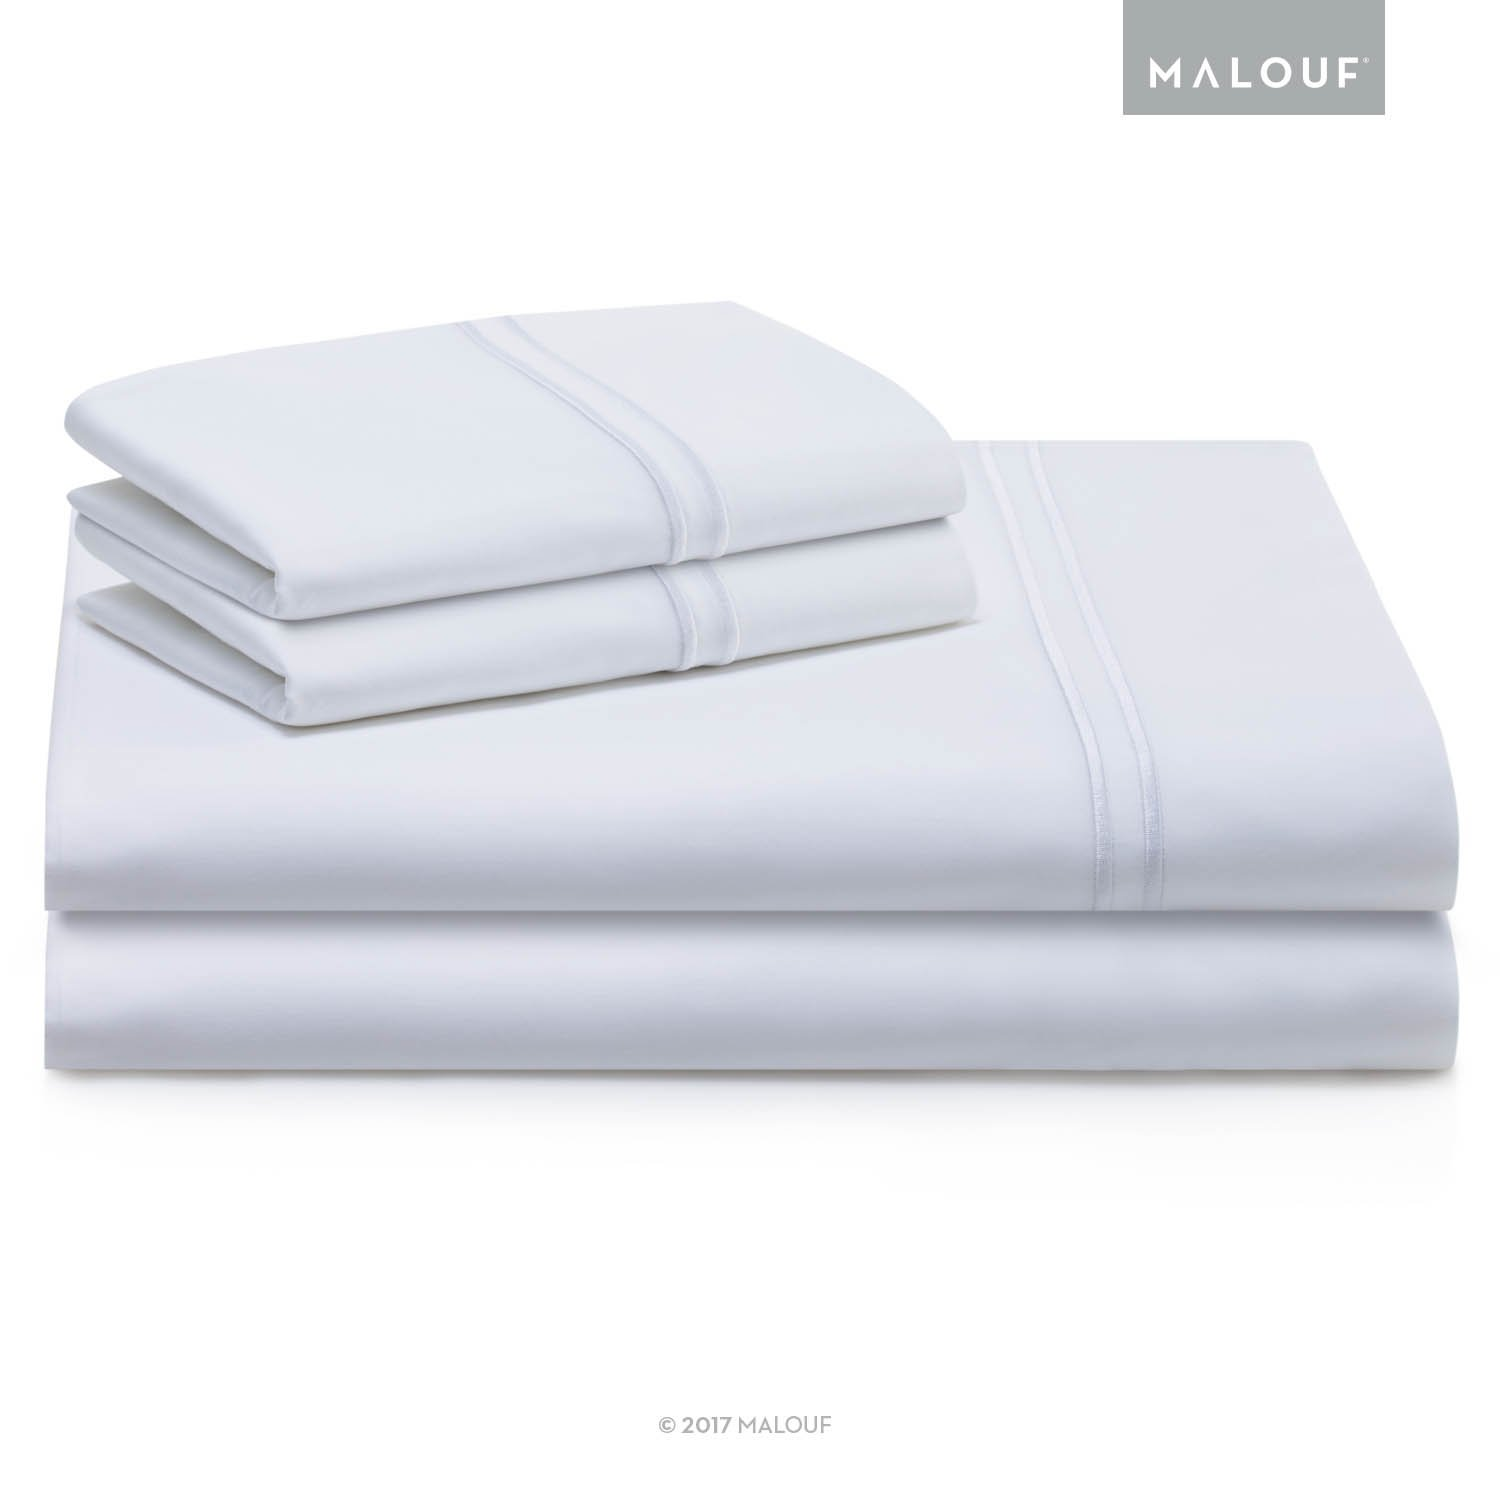 WOVEN SUPIMA Premium Cotton Sheets - 100 Percent American Grown - Extra Long Staple - Sateen Weave - Extra Deep Pockets - Single Ply - 600 Thread Count - Twin - White